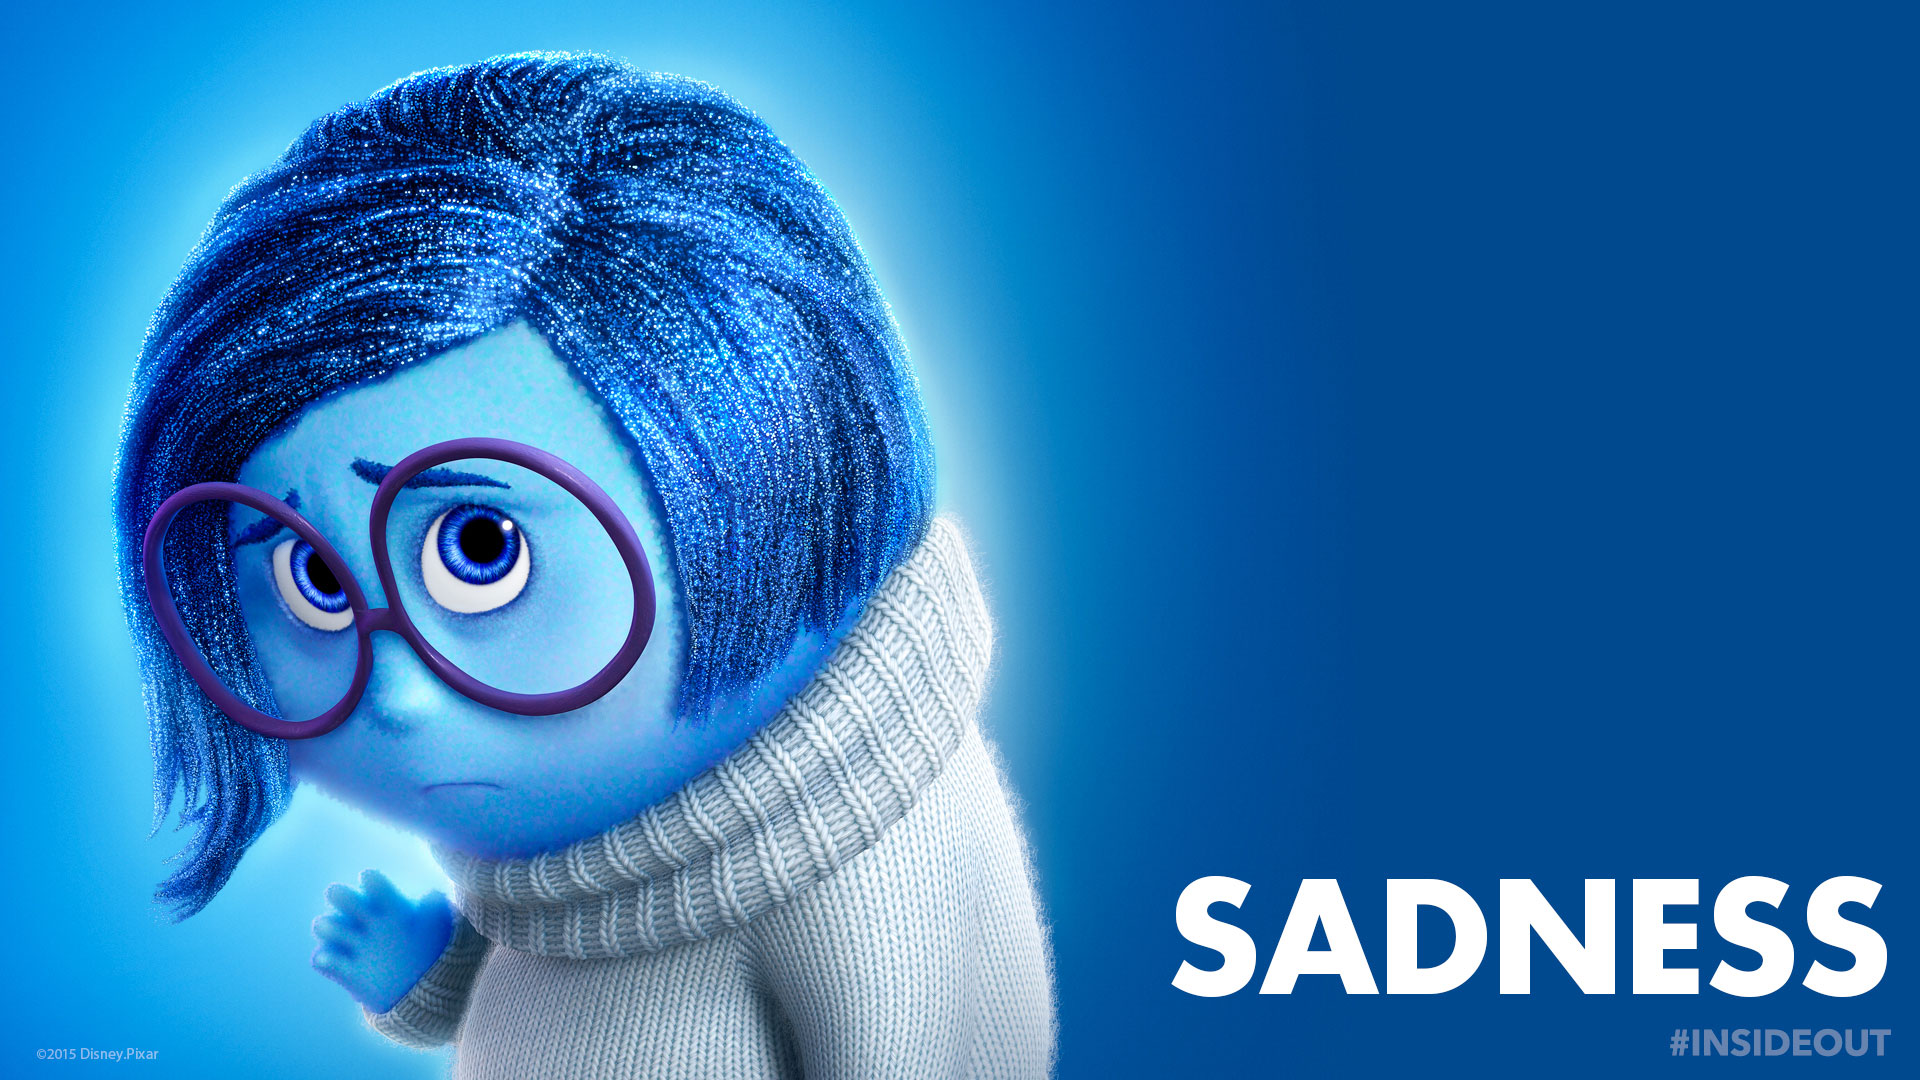 Free Inside Out Sadness Wallpaper Backgrounds 2015